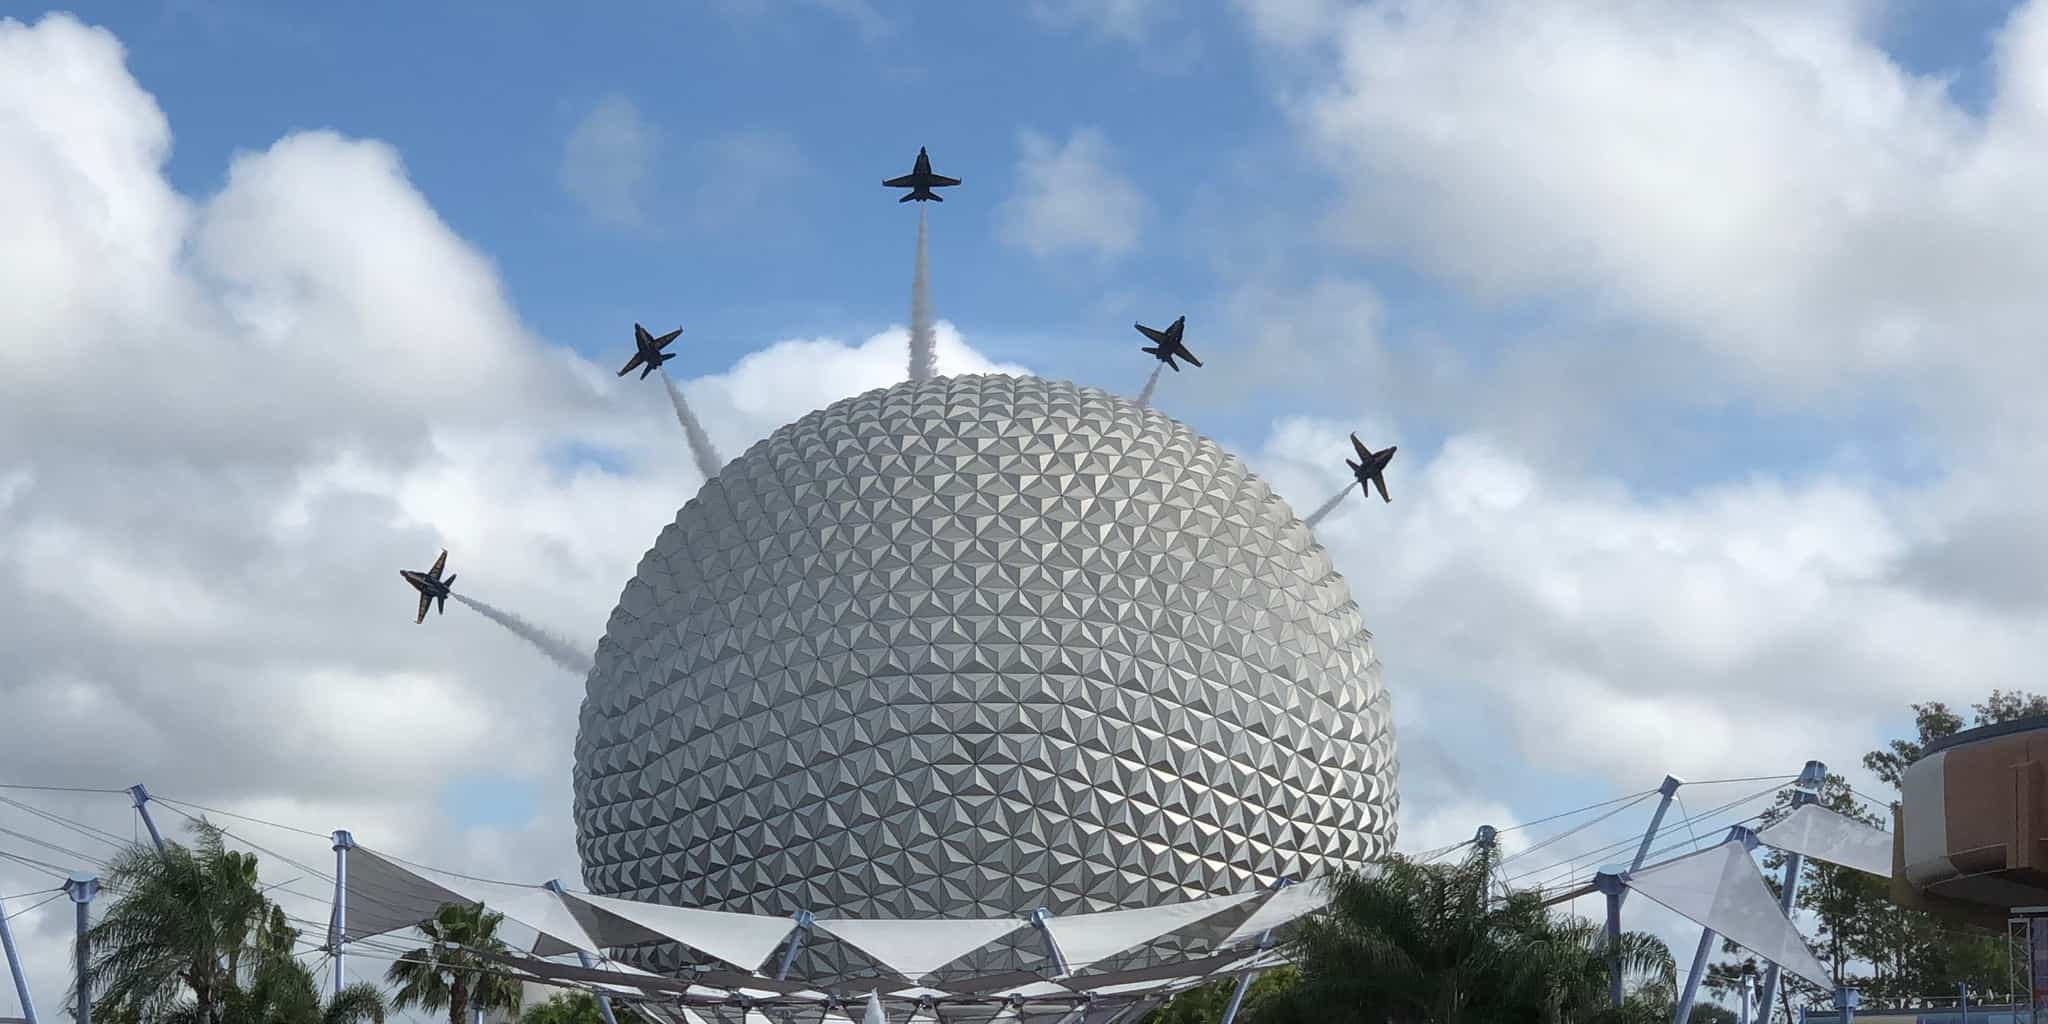 Spaceship-Earth-Blue-Angels-1x2-by-Joshua-Meyer